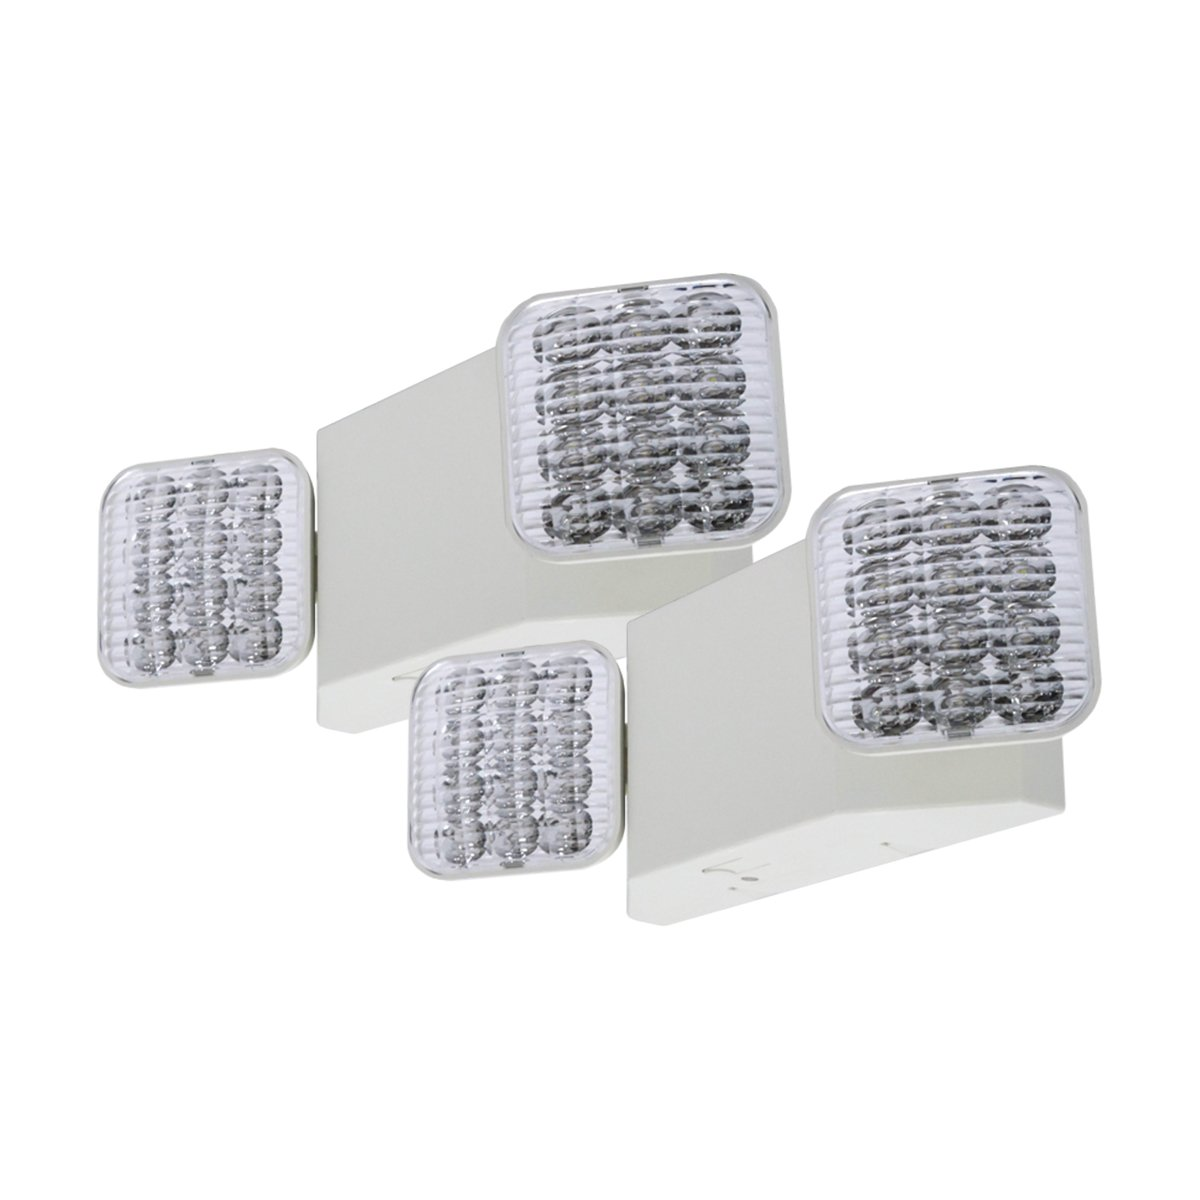 LFI Lights - 2 Pack - UL Certified - Hardwired LED Emergency Light Standard - ELW2x2